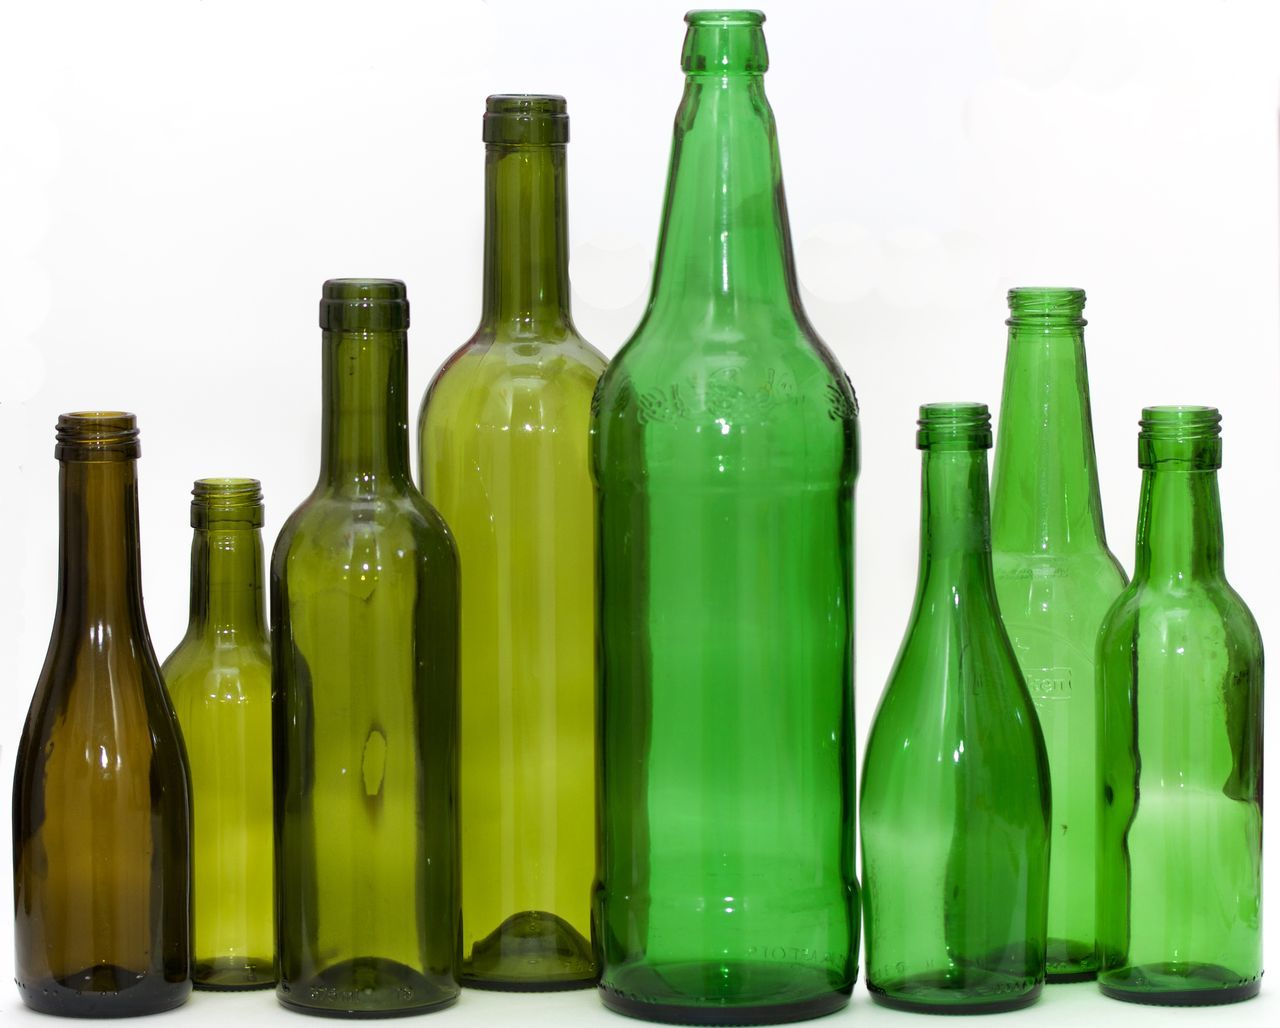 eight green bottles on white background Agriculture Alcohol Bottle Drink Green Bottle Green Color Industry No People Red Wine Wine Wine Bottle Winery